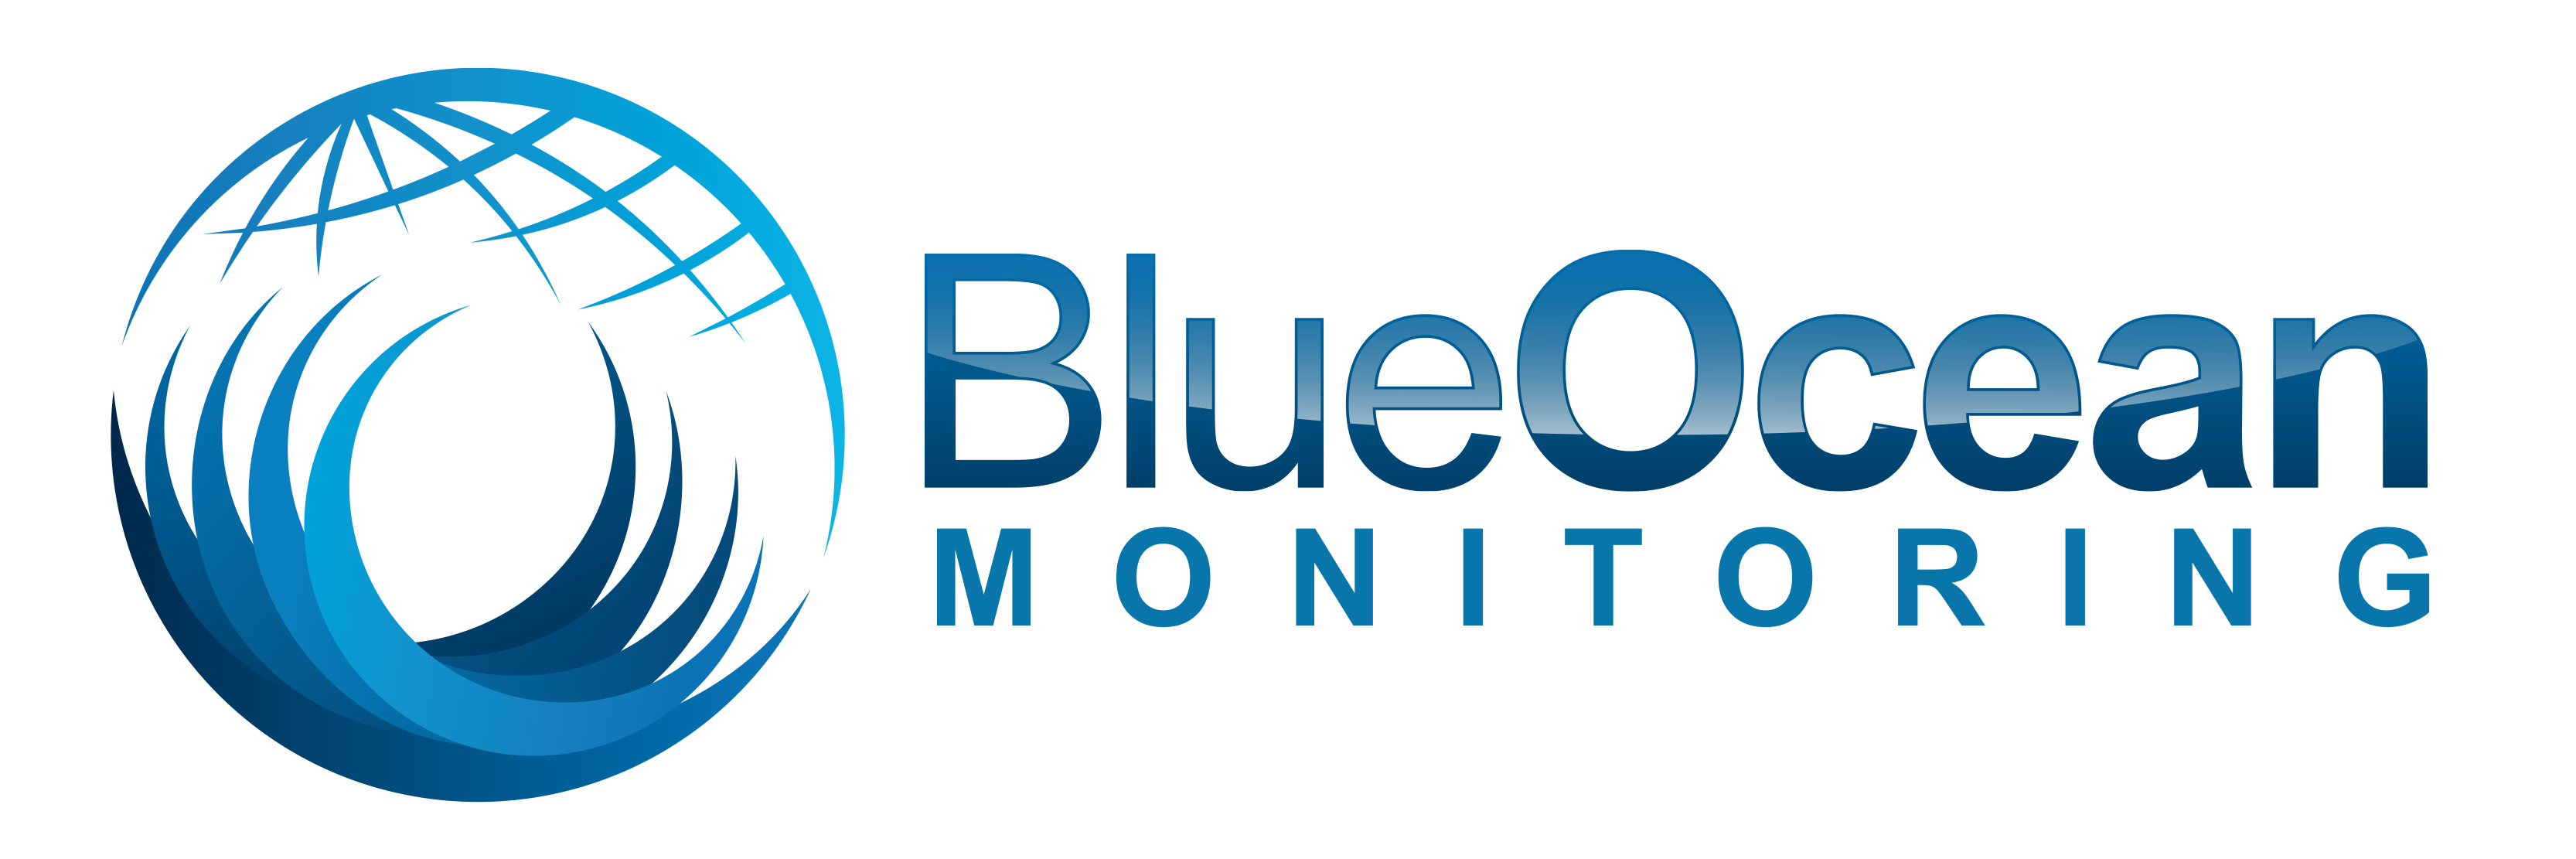 Blue Ocean Monitoring